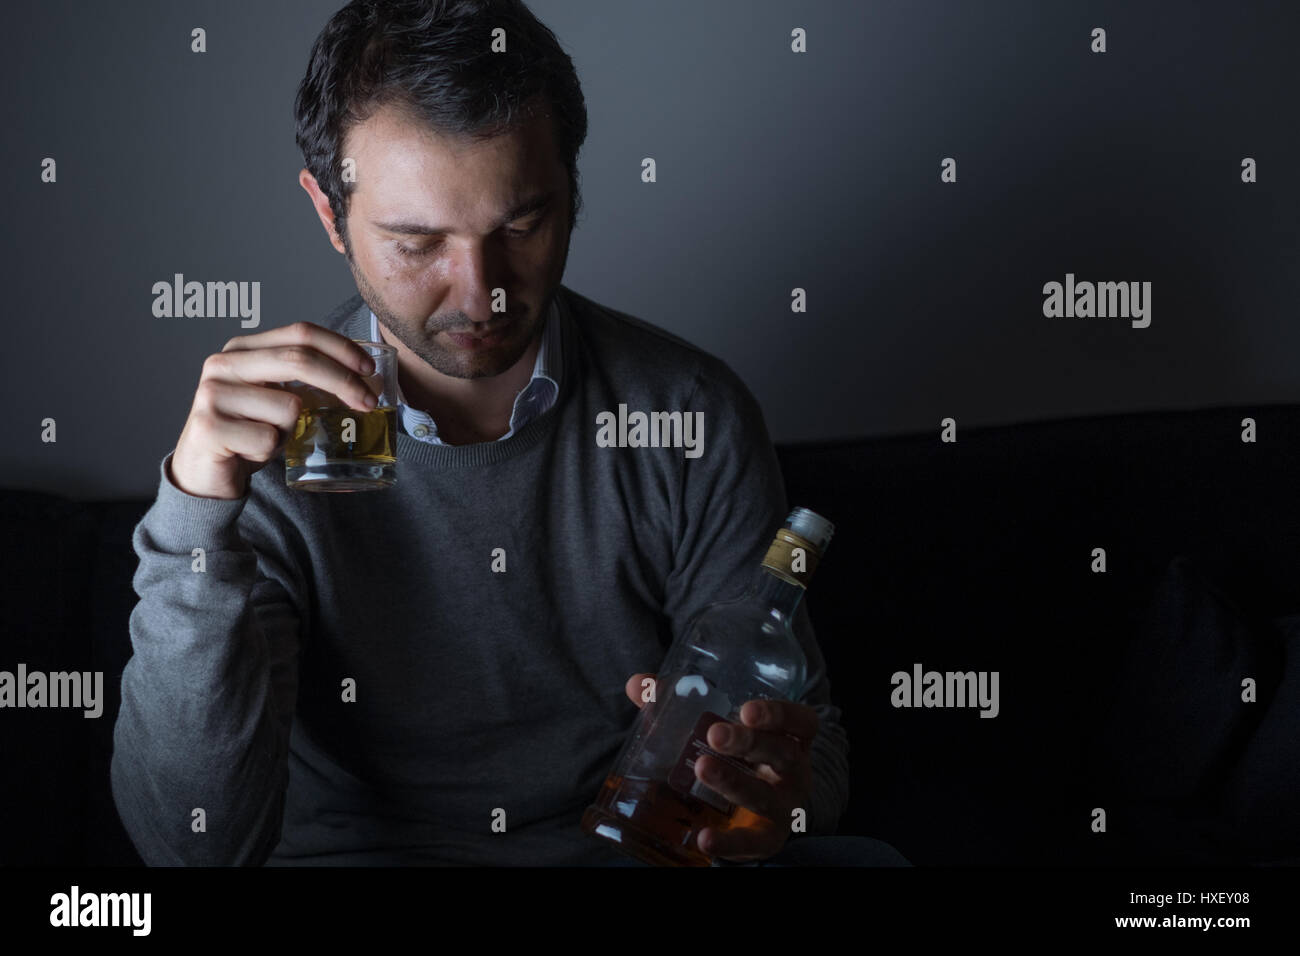 Depressed man abusing of alcohol trying to forget his problems - Stock Image